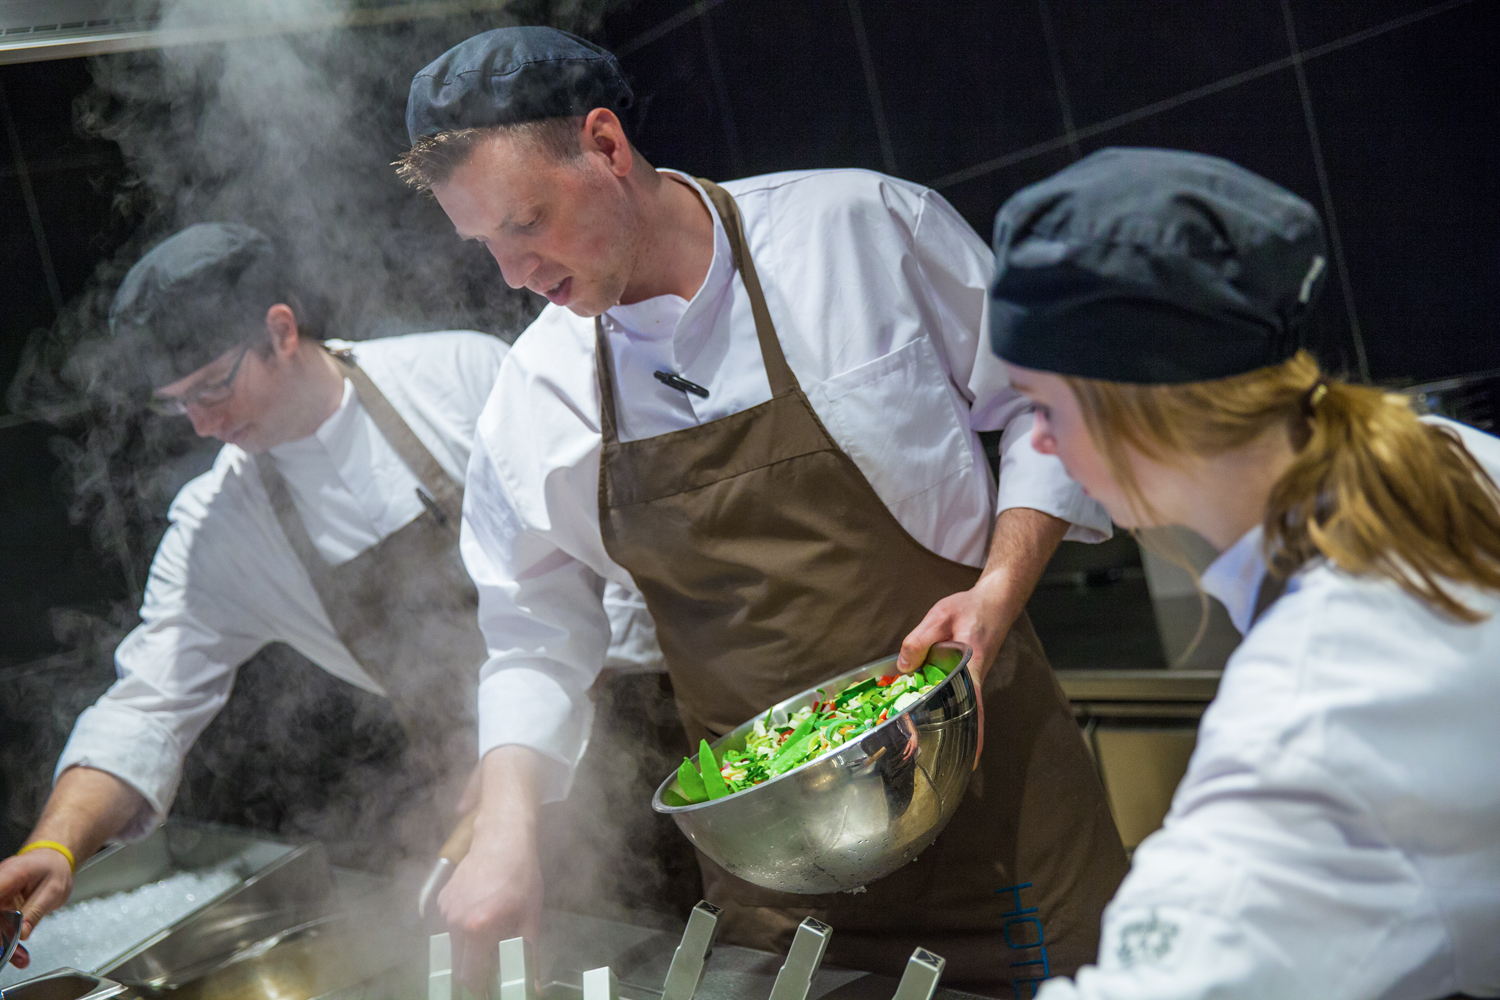 *Live Cooking* | Every Saturday and Sunday - Hotel Zwolle